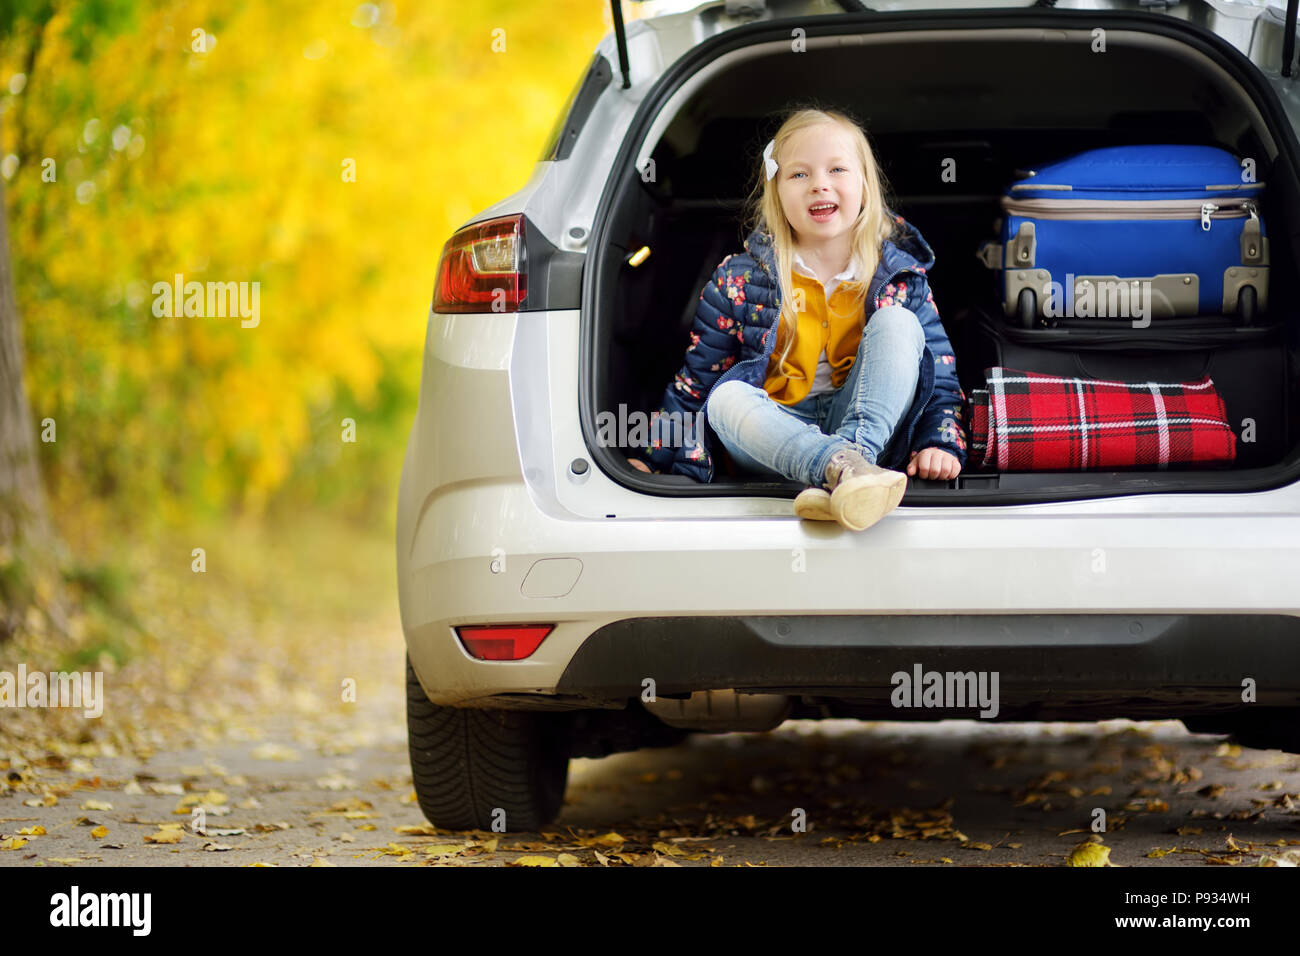 Adorable girl sitting ain a car trunk ready to go on vacations with her parents. Child looking forward for a road trip or travel. Autumn break at scho - Stock Image